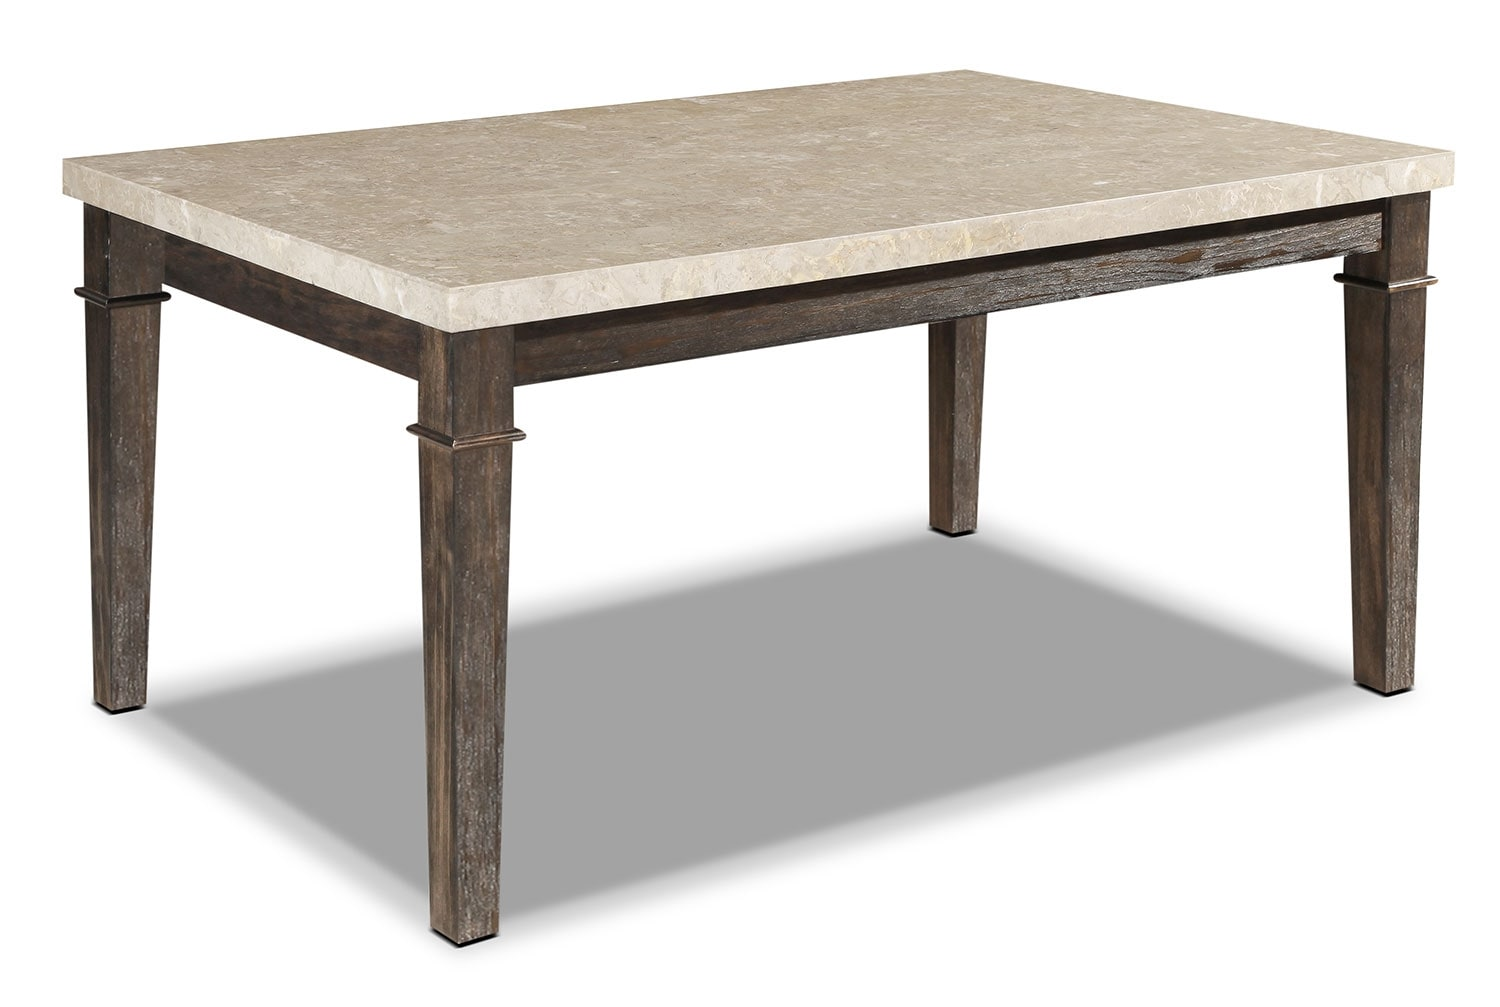 Aldo dining table the brick - Dining table images ...